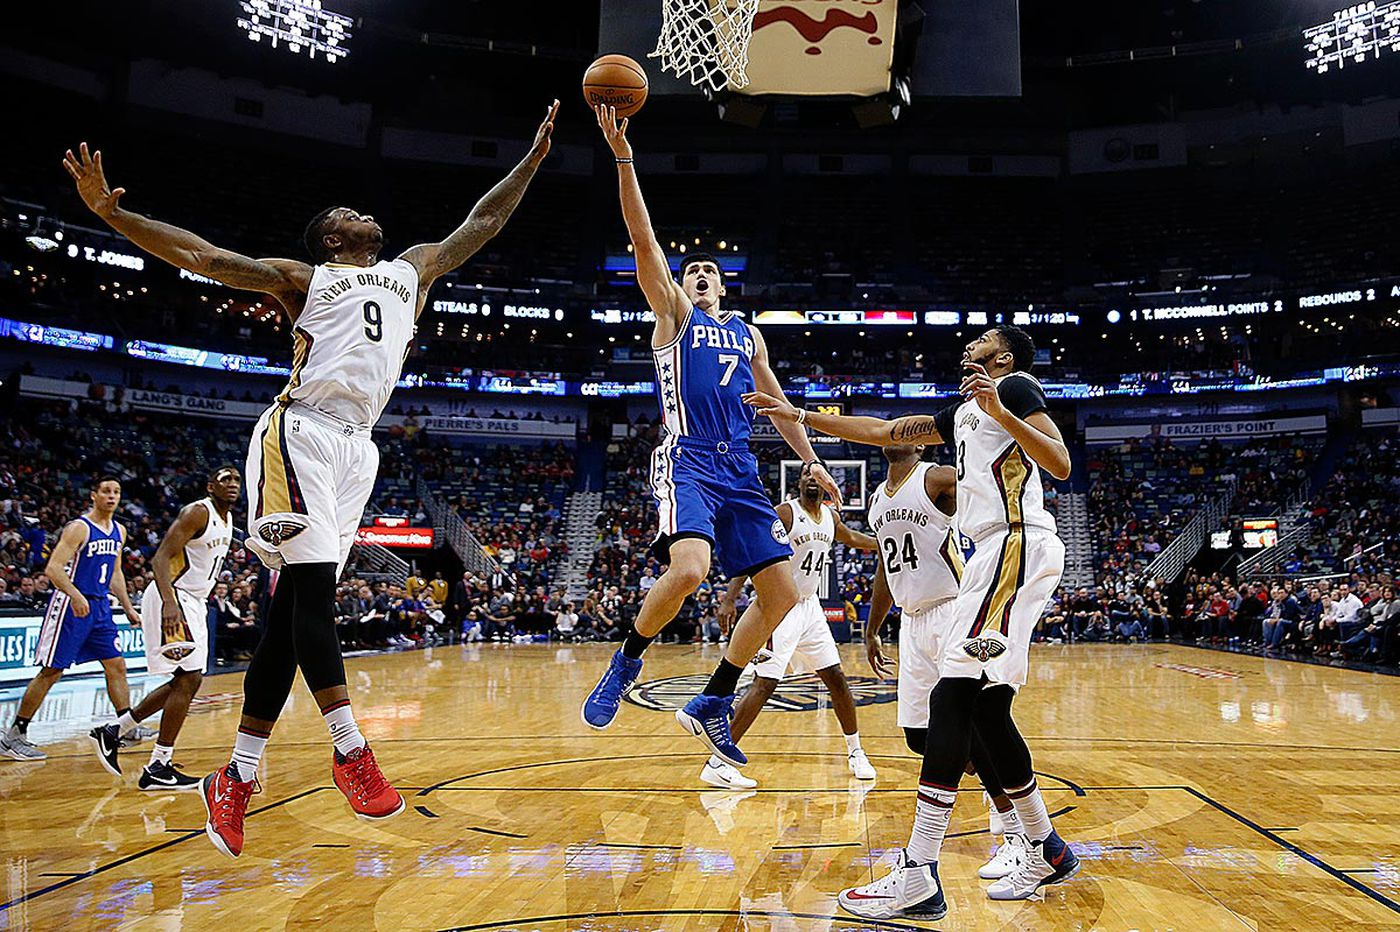 Cooney: Sixers snap road losing streak with win at New Orleans